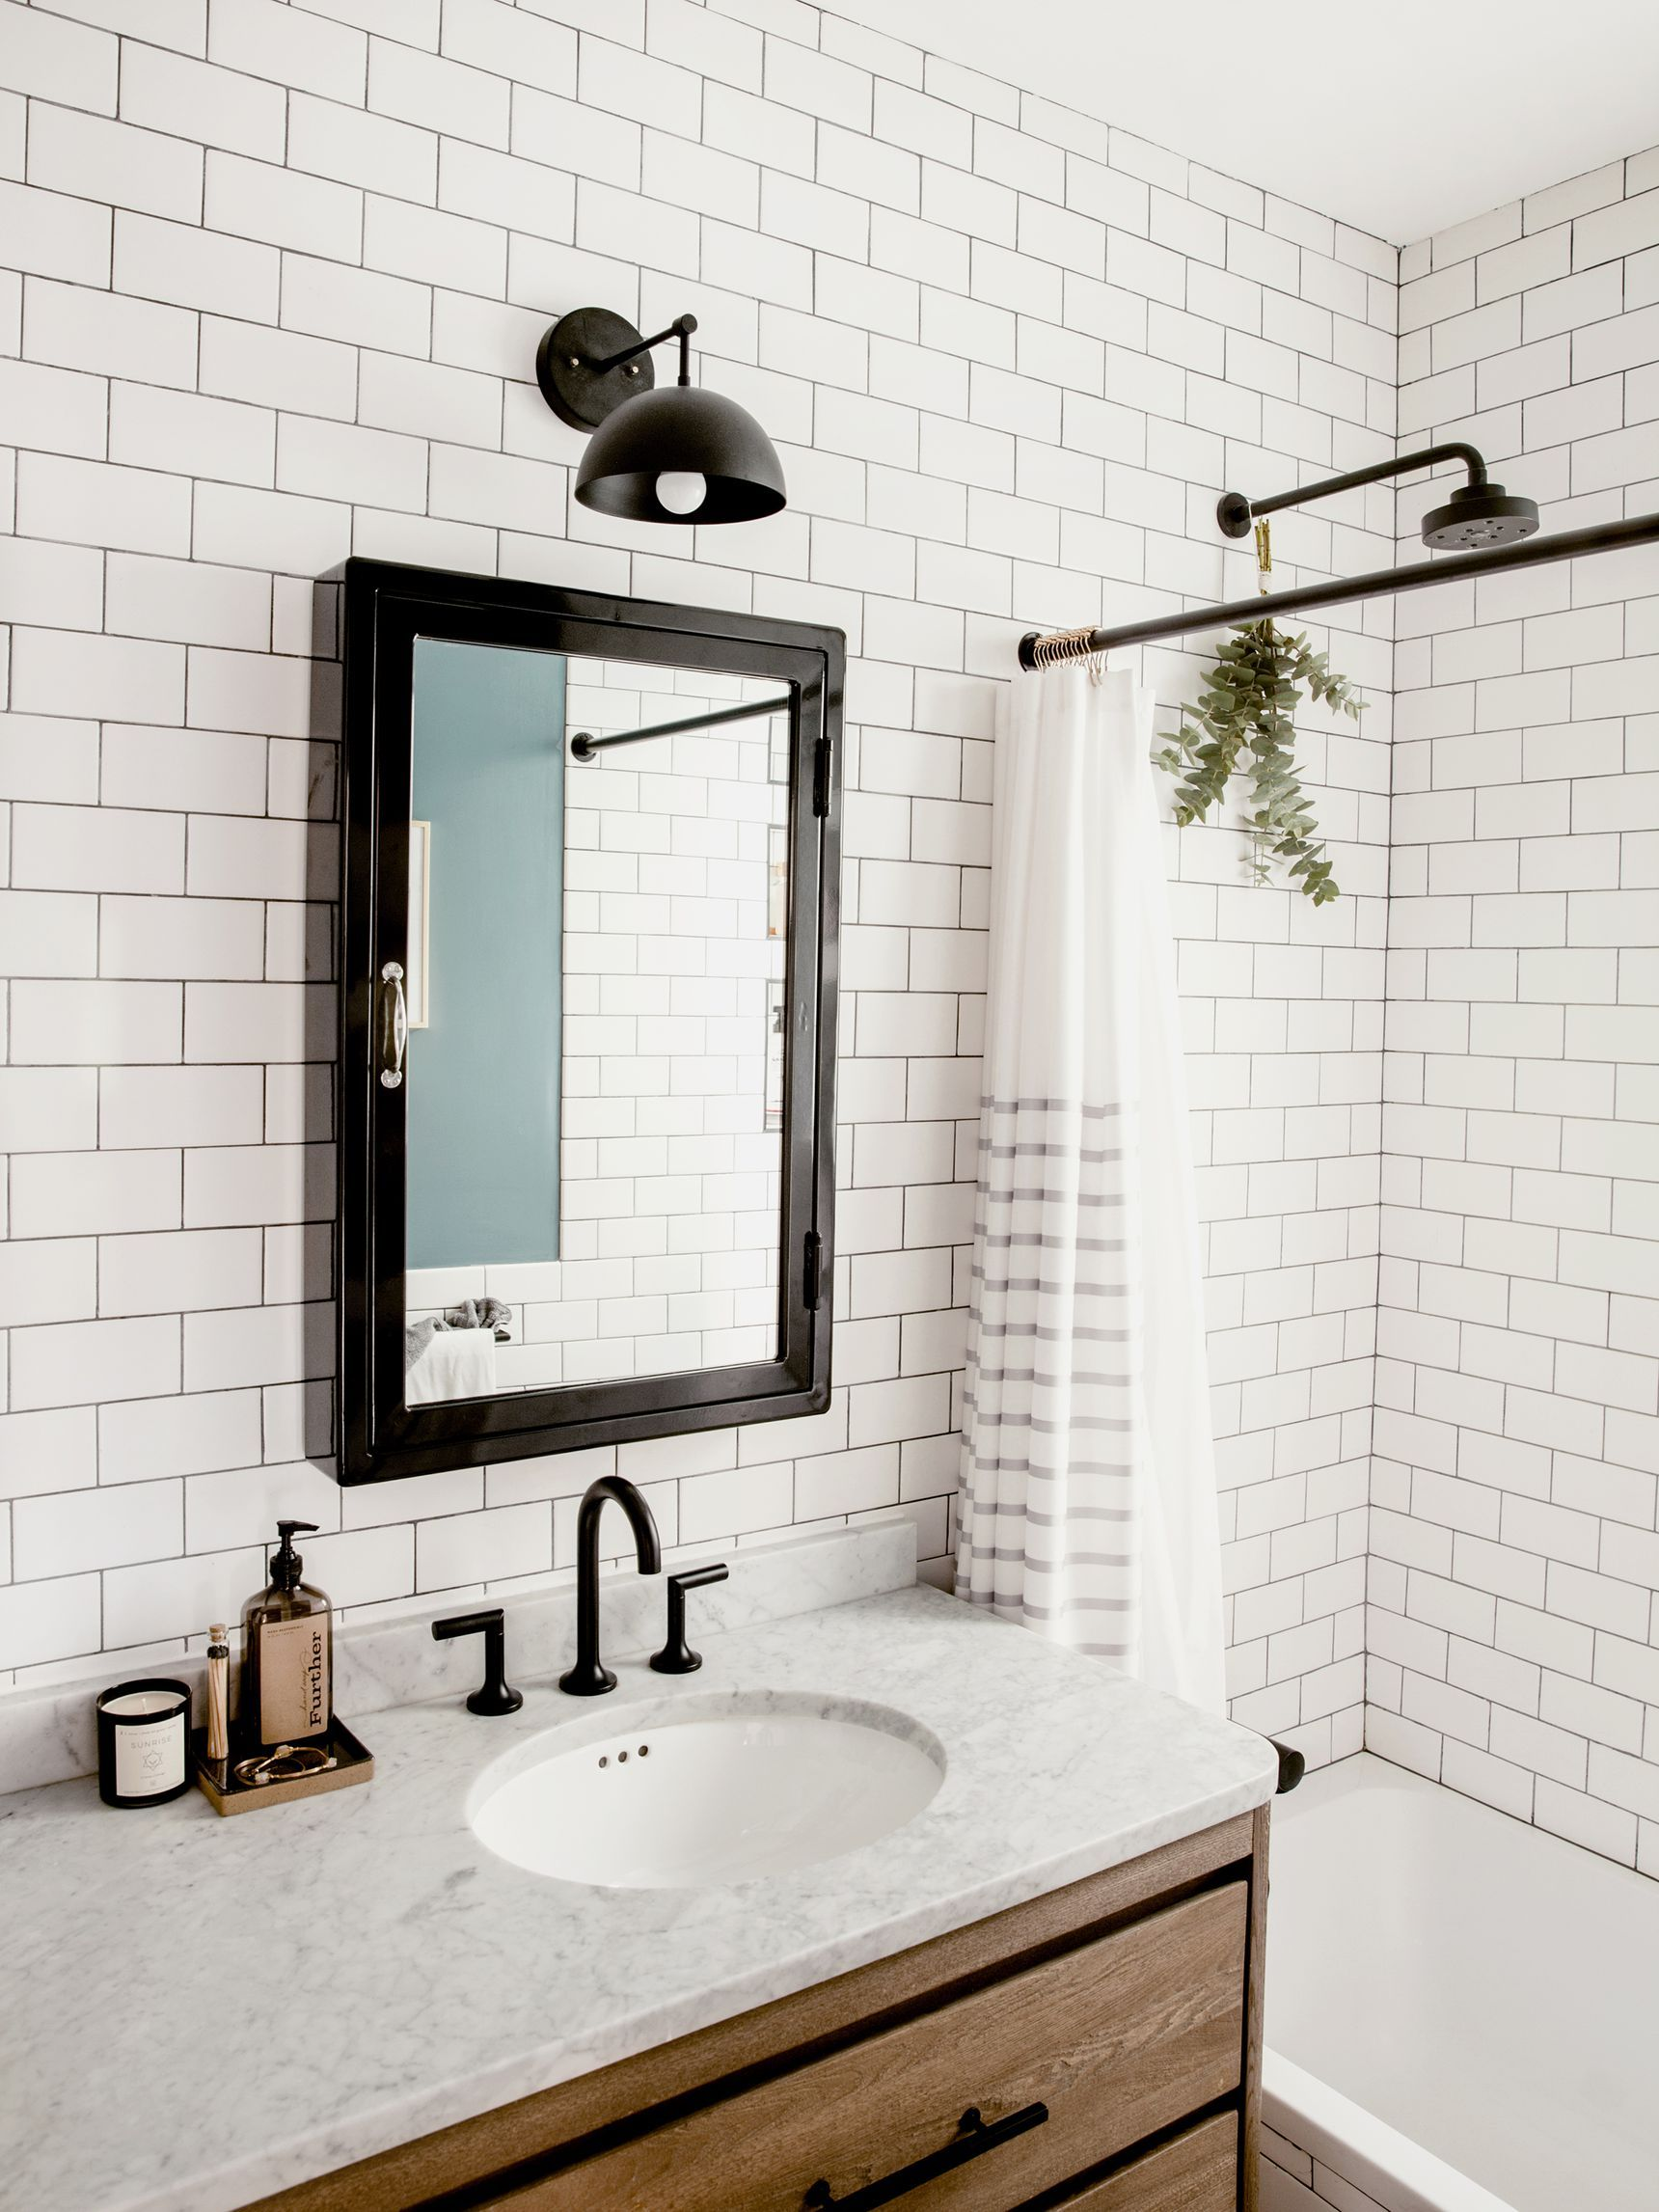 A Bathroom Has White Subway Tile And Dark Grout A